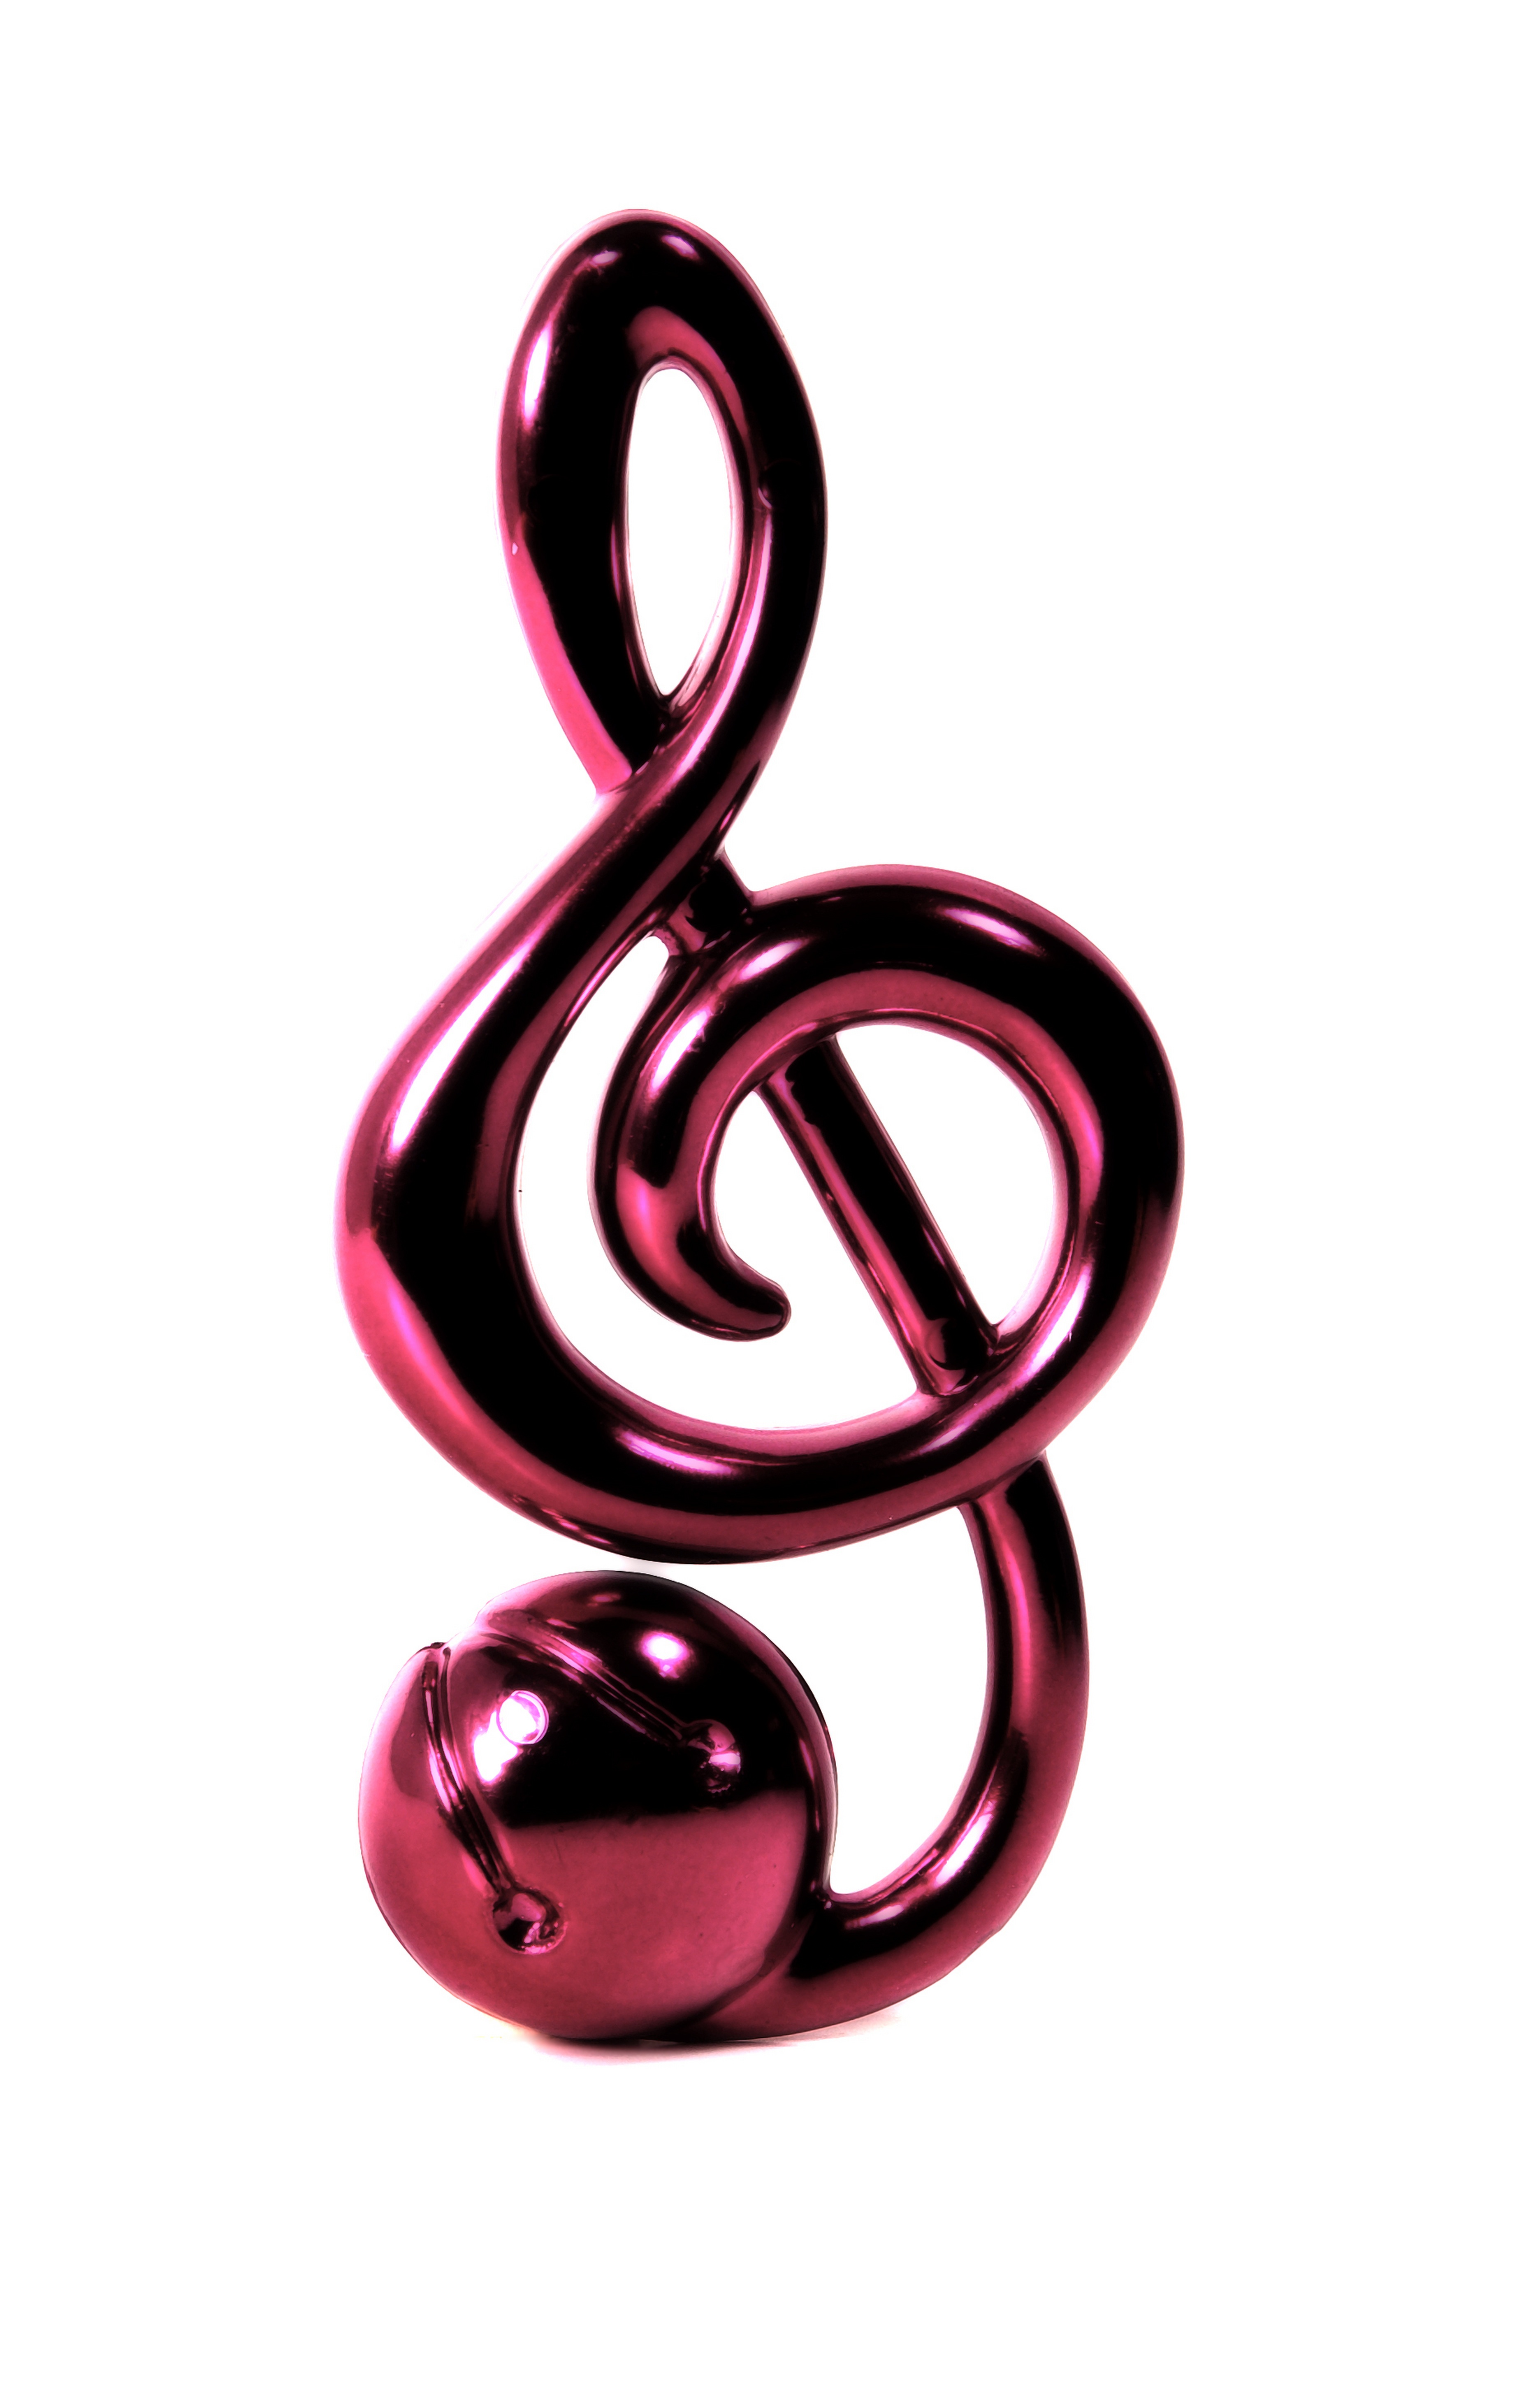 music note pictures clipart best music note clip art black and white music note clip art images